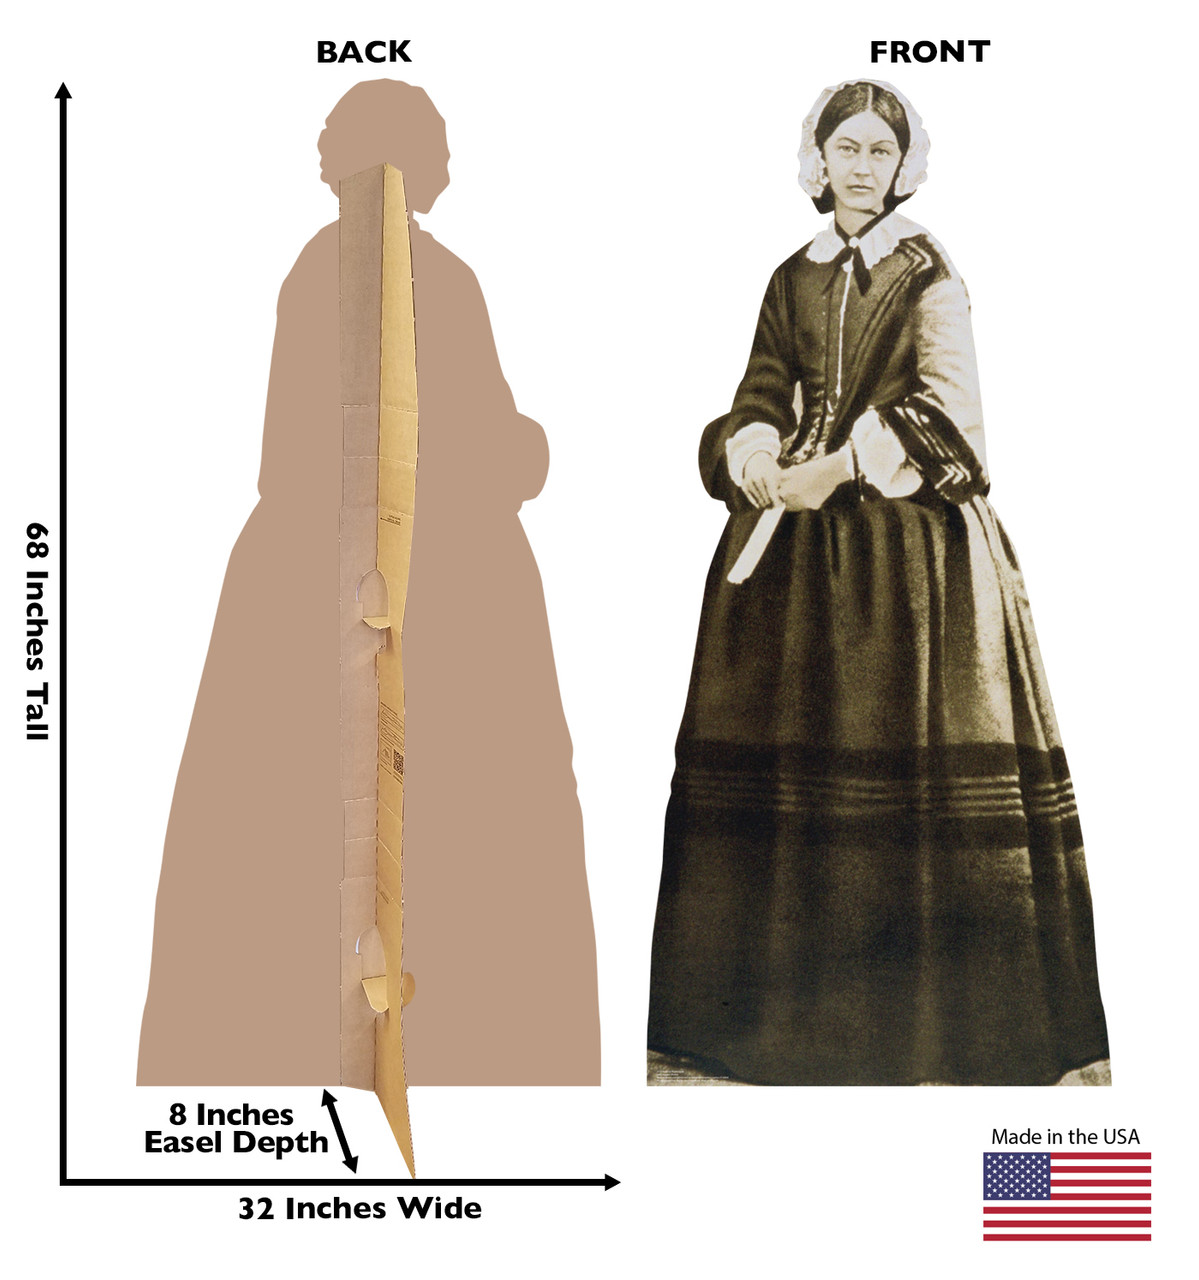 Life-size cardboard standee of Florence Nightingale with back and front dimensions.